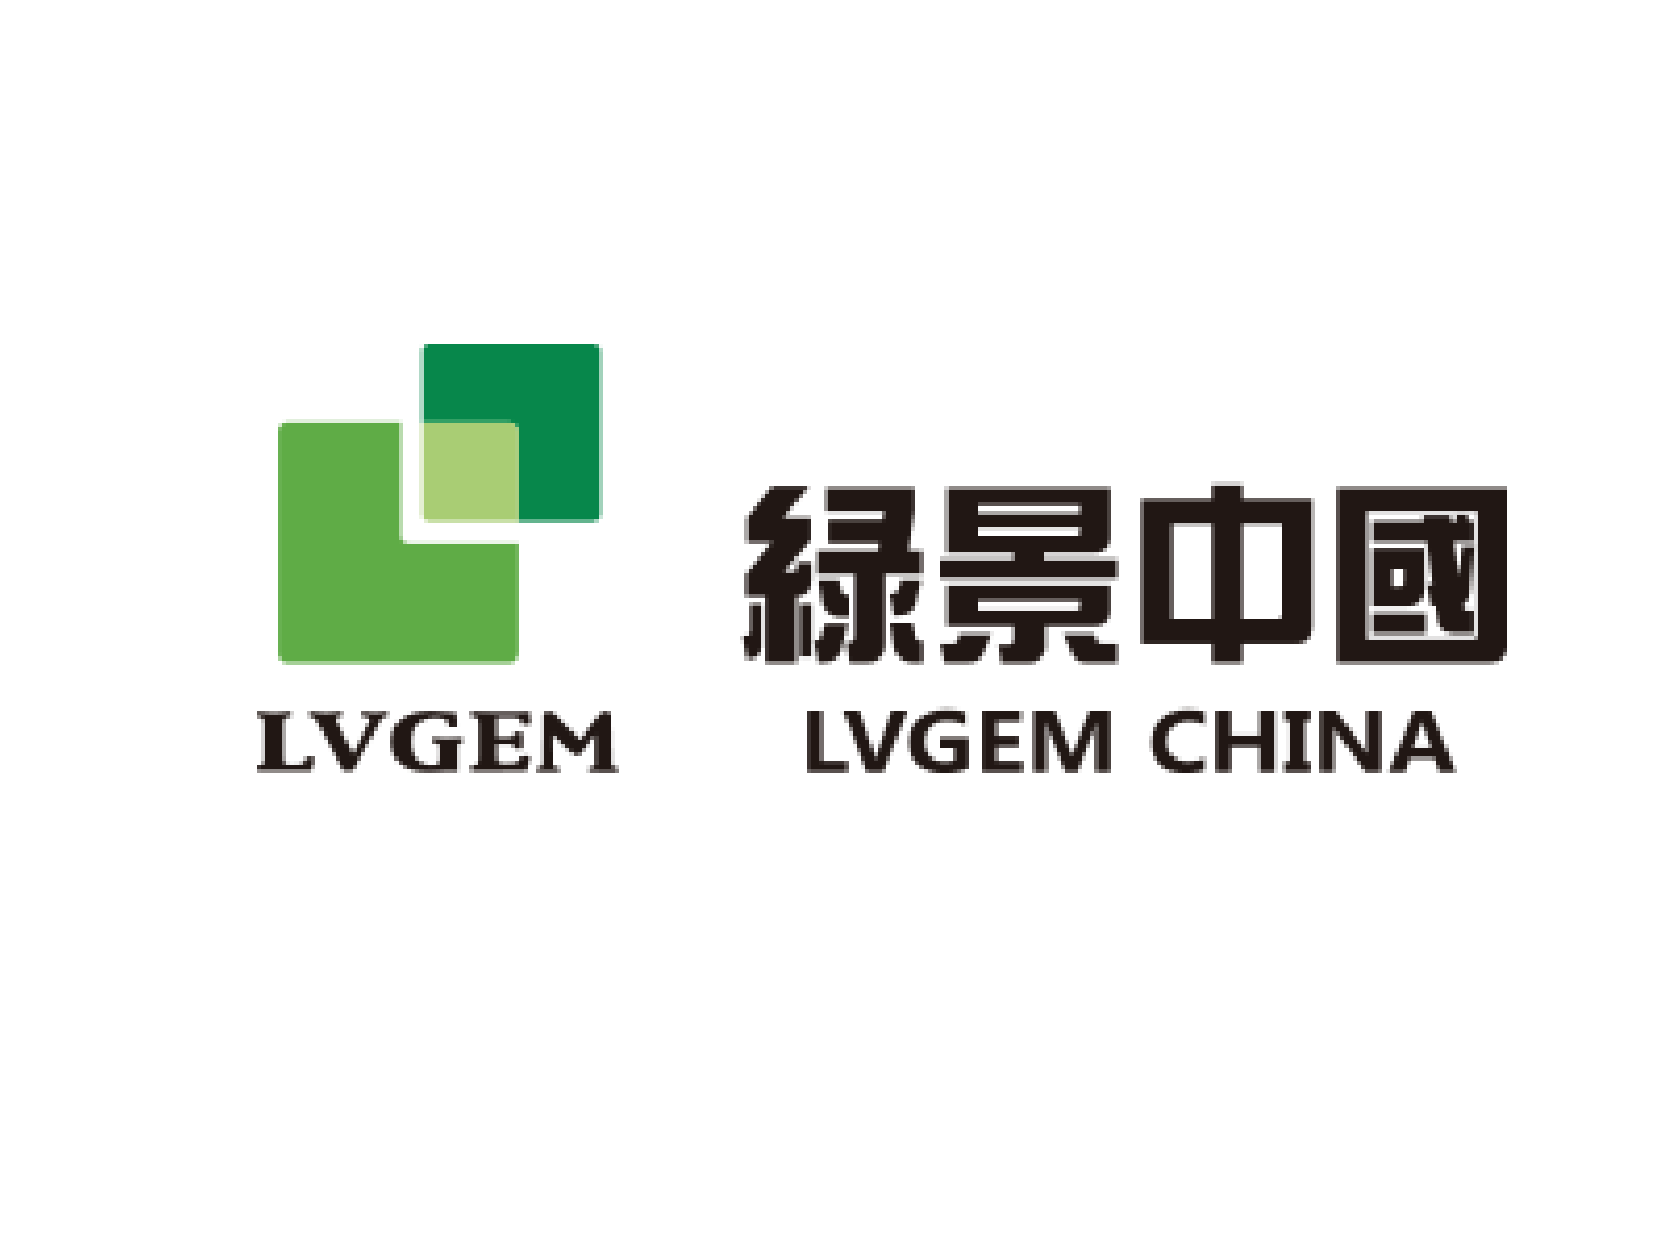 Equity Research 95 Hk Lvgem China Real Estate Investment Company Asset Injection Propels Stock To New Heights Upgrade To Buy Amtd International